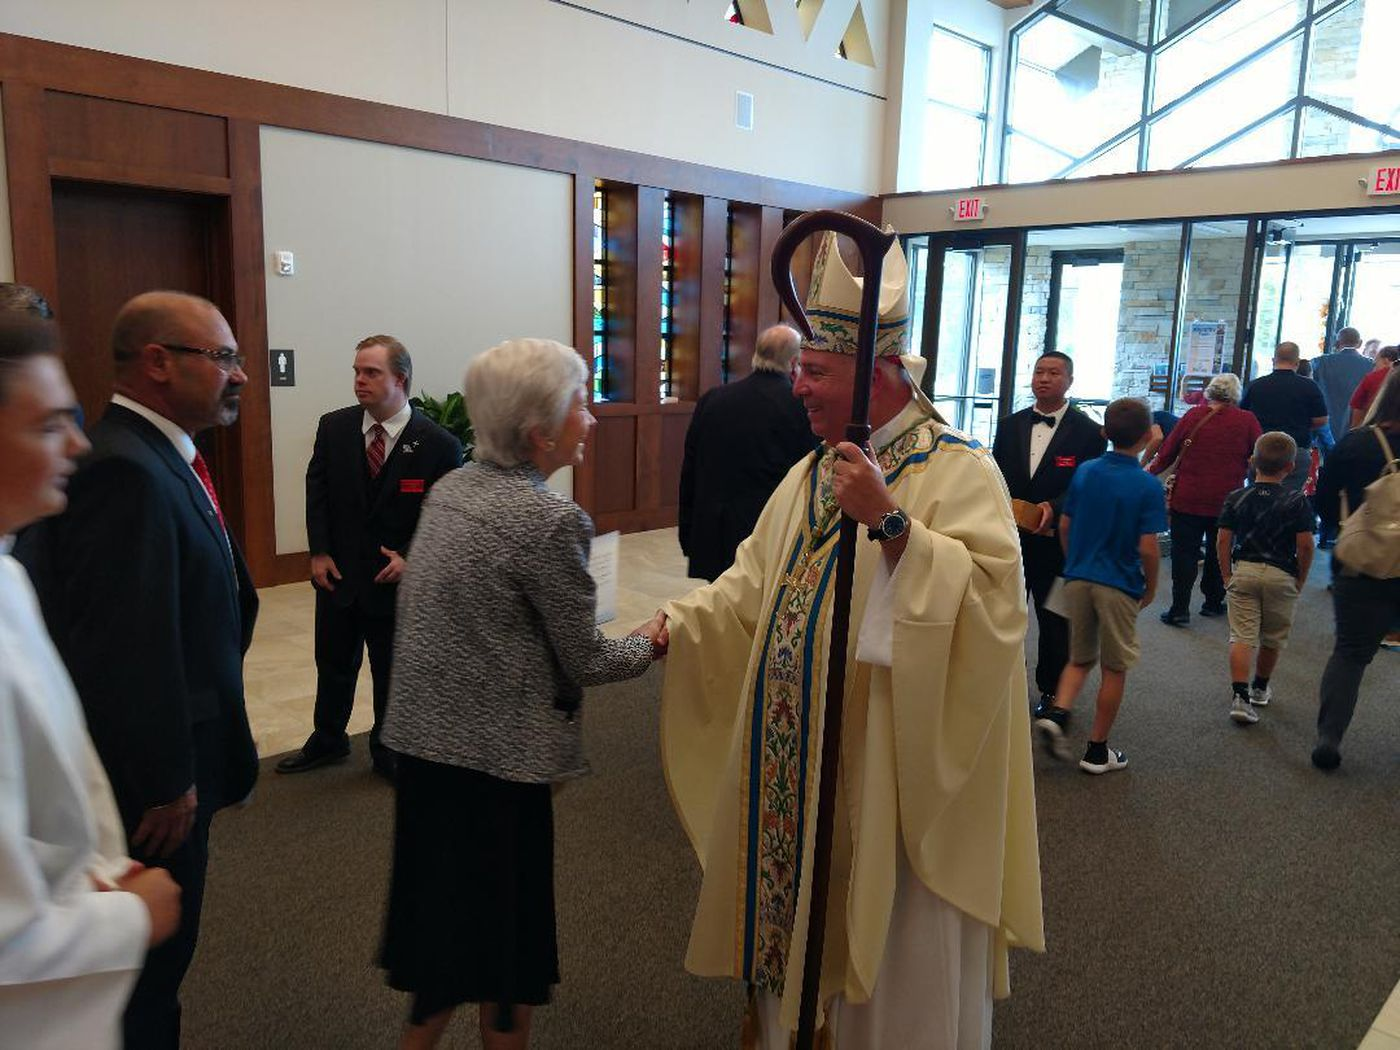 Bishop Nelson Pérez celebrated a parish dedication mass Sept. 8 at St. Ambrose Church in Brunswick. A $5.6 million renovation of the church was completed this year.